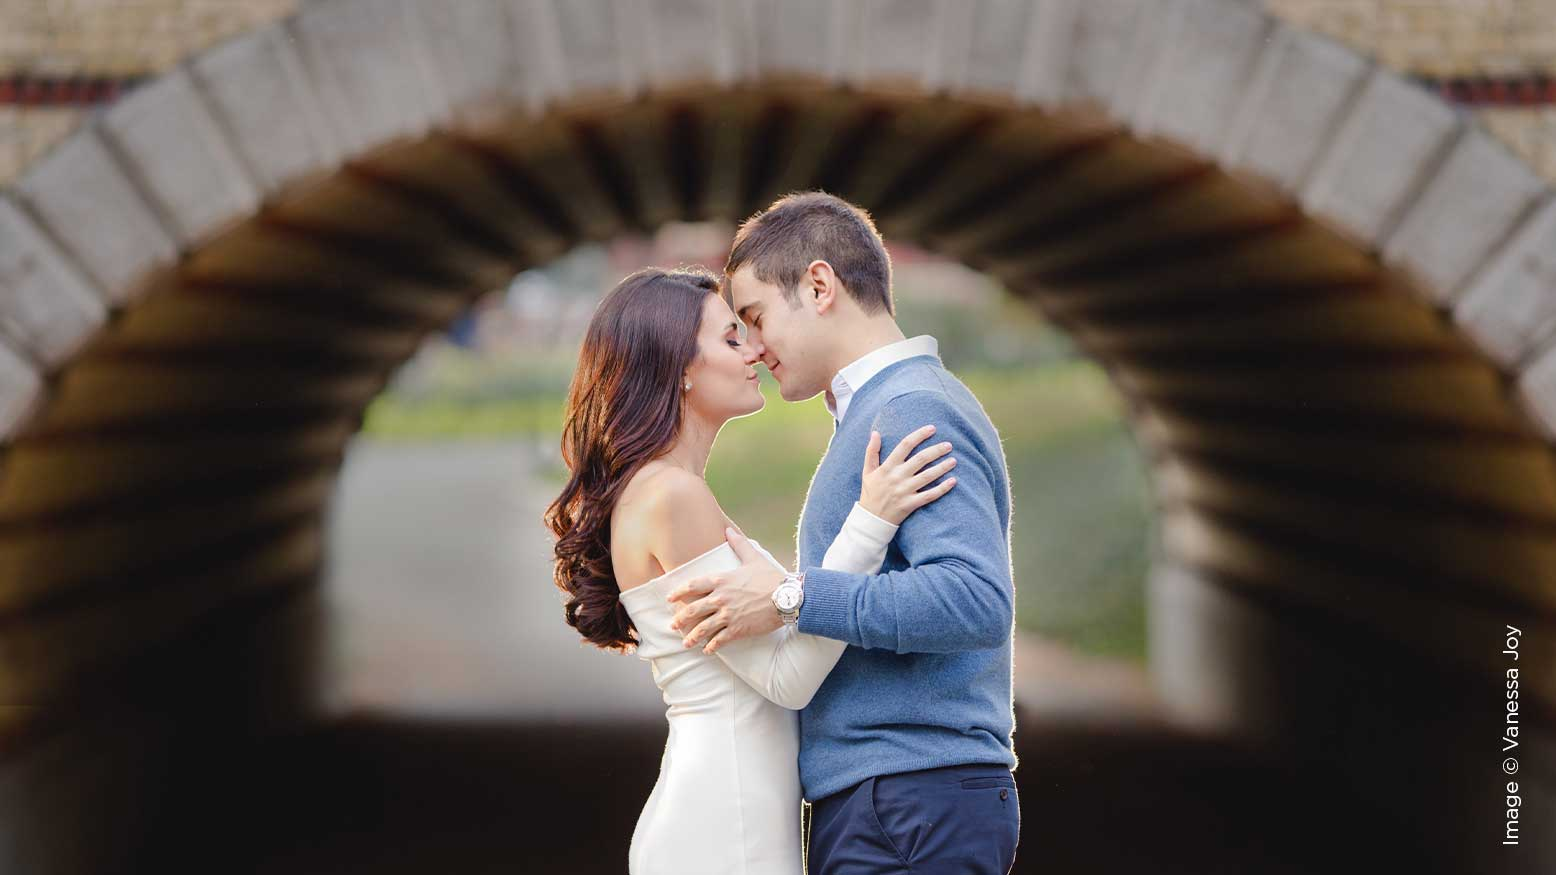 How to Shoot An Engagement Session